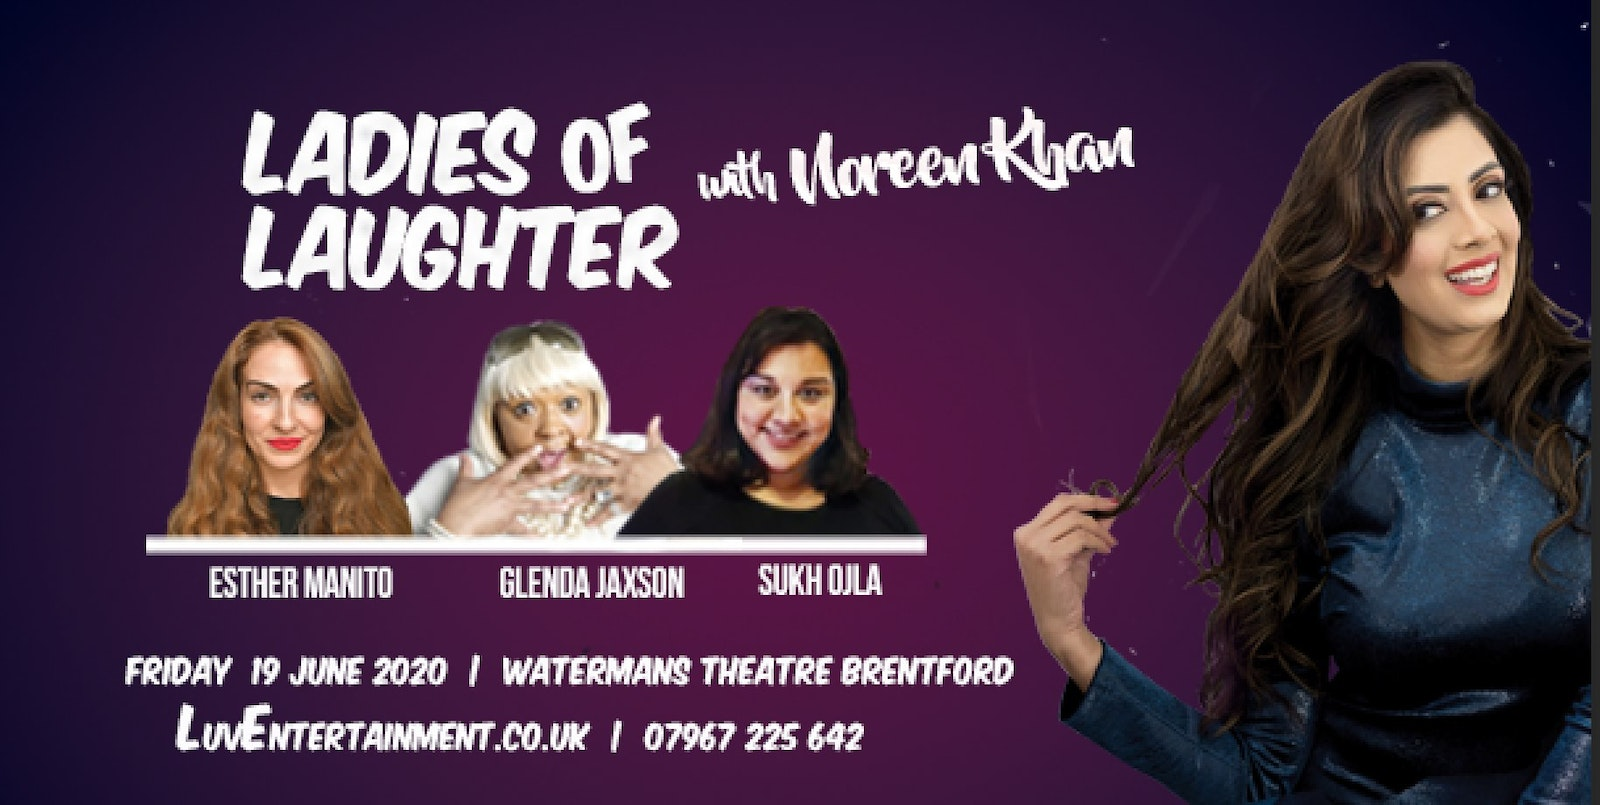 Ladies Of Laughter With Noreen Khan : Brentford